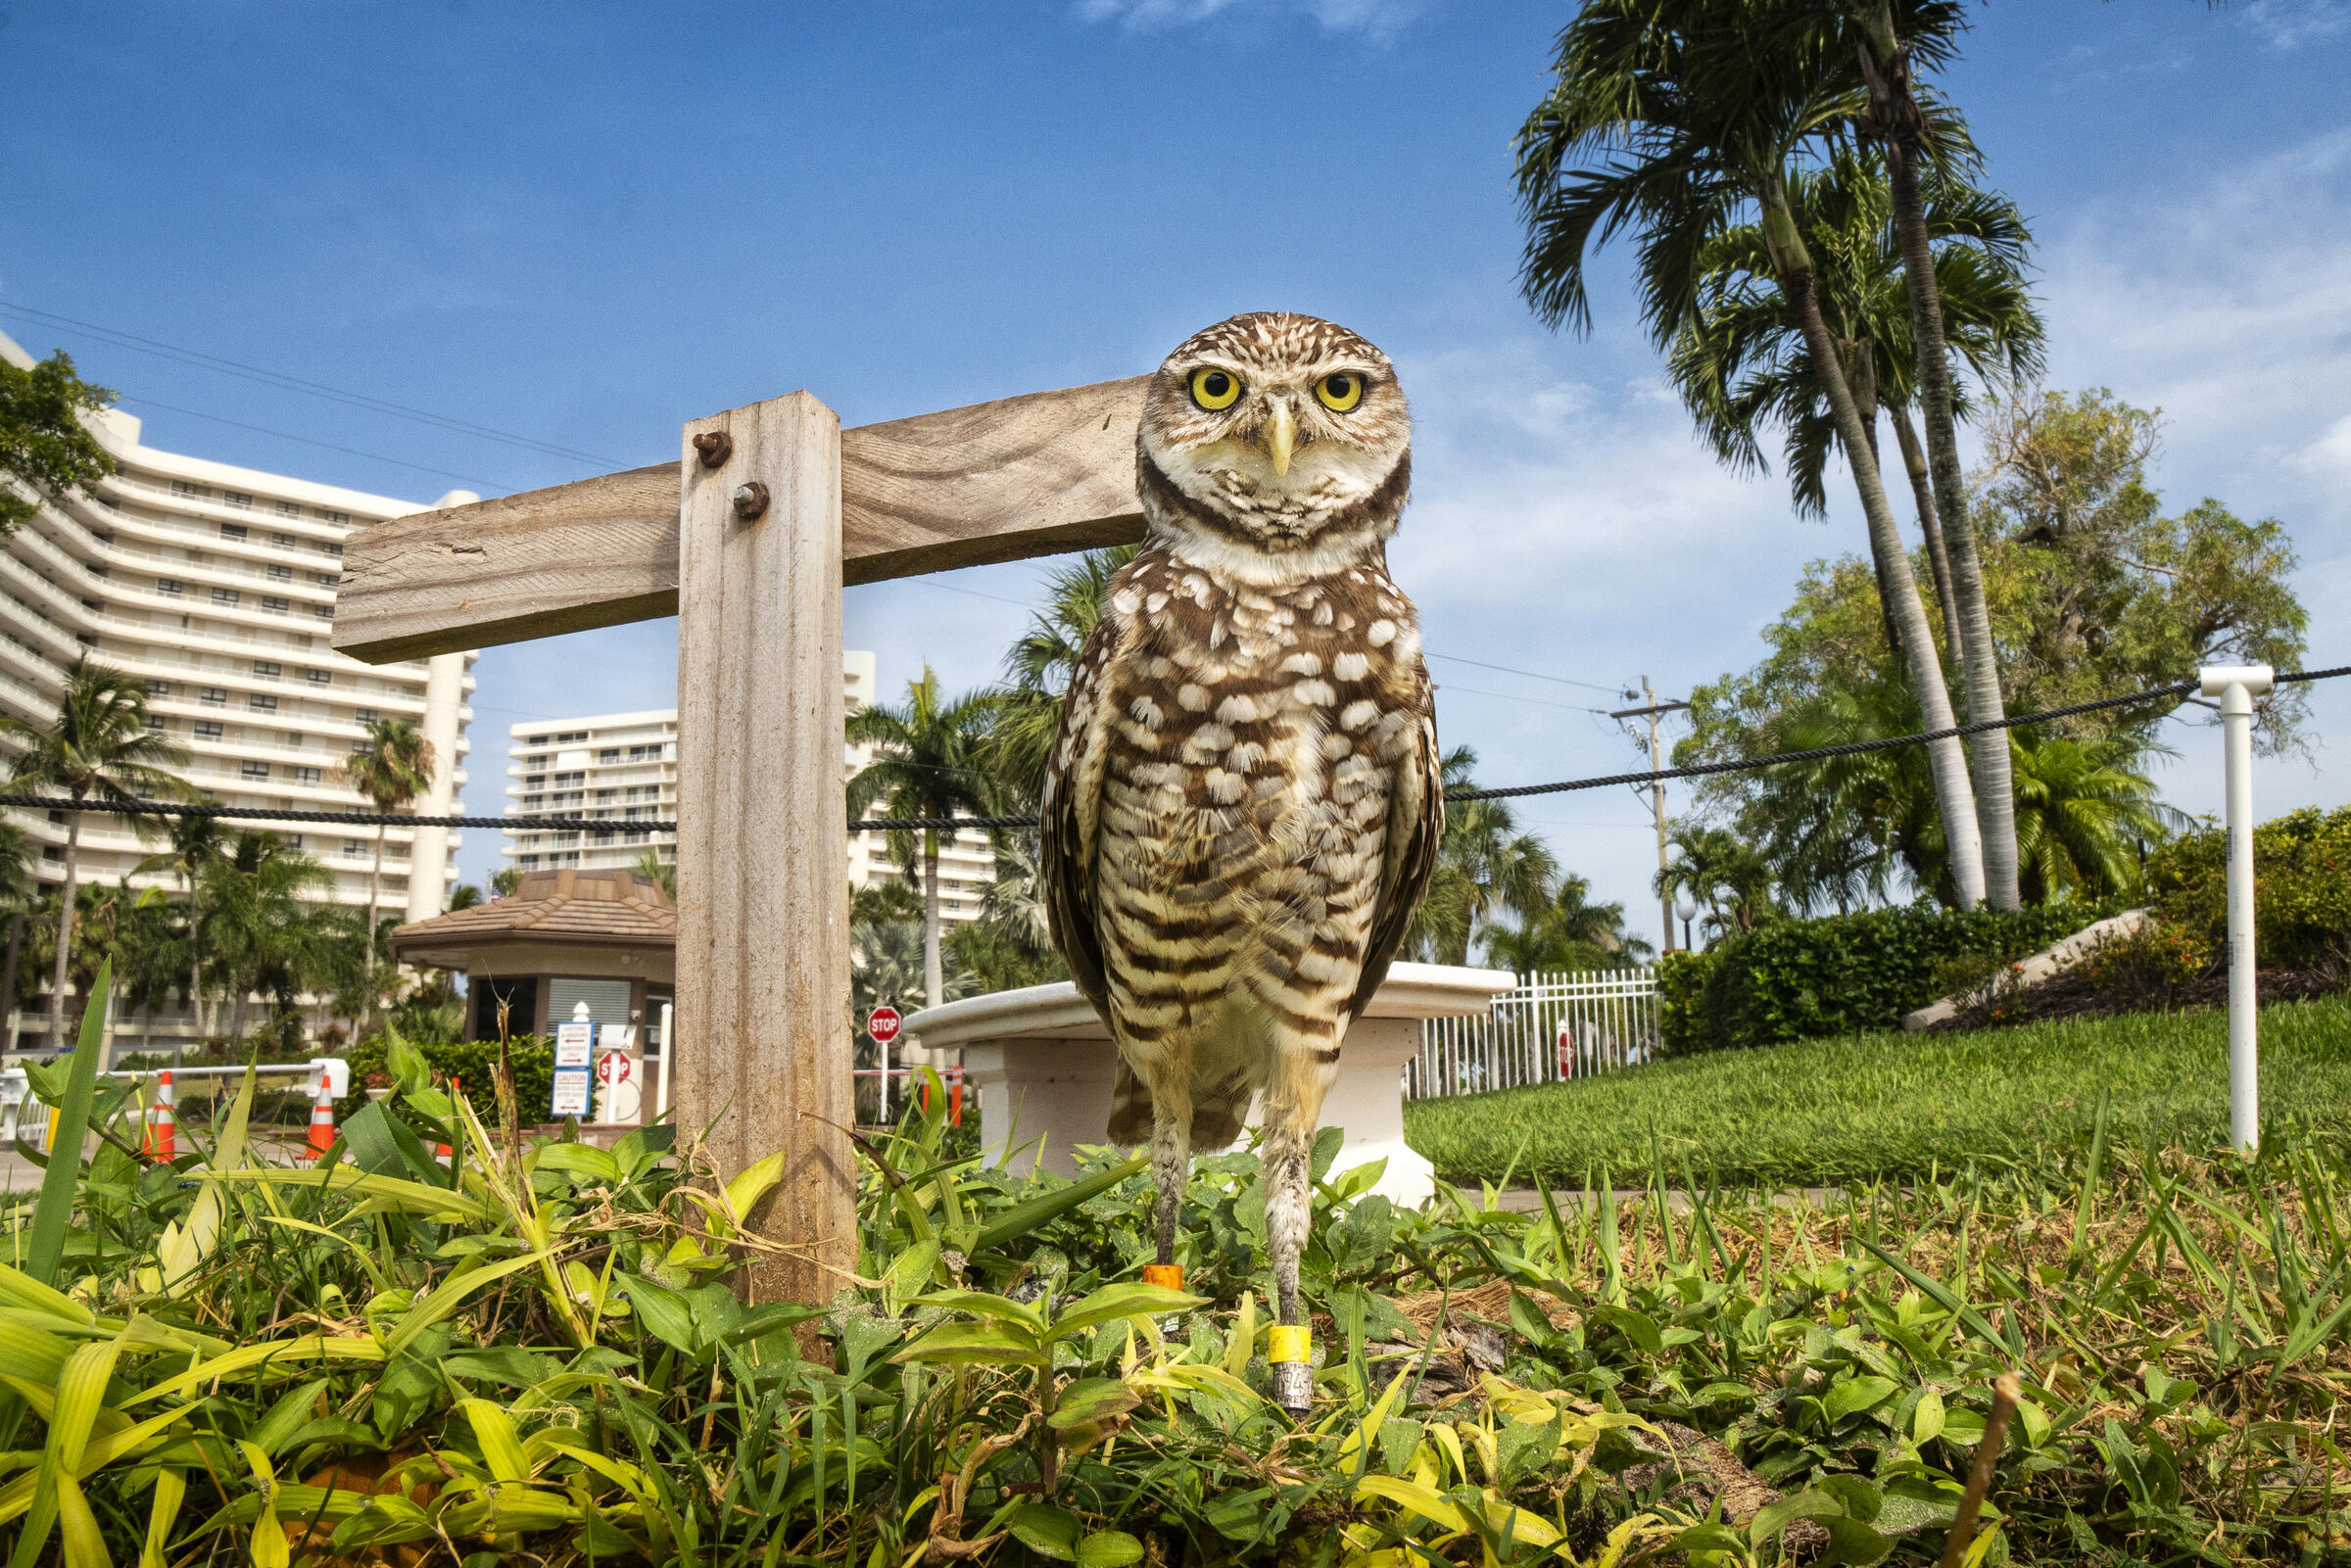 A male owl, named Umberto Bench, lives with his mate in front of the gated entrance to a beachfront condominium complex. A parade of people visit the pair and their five chicks on a daily basis. Karine Aigner